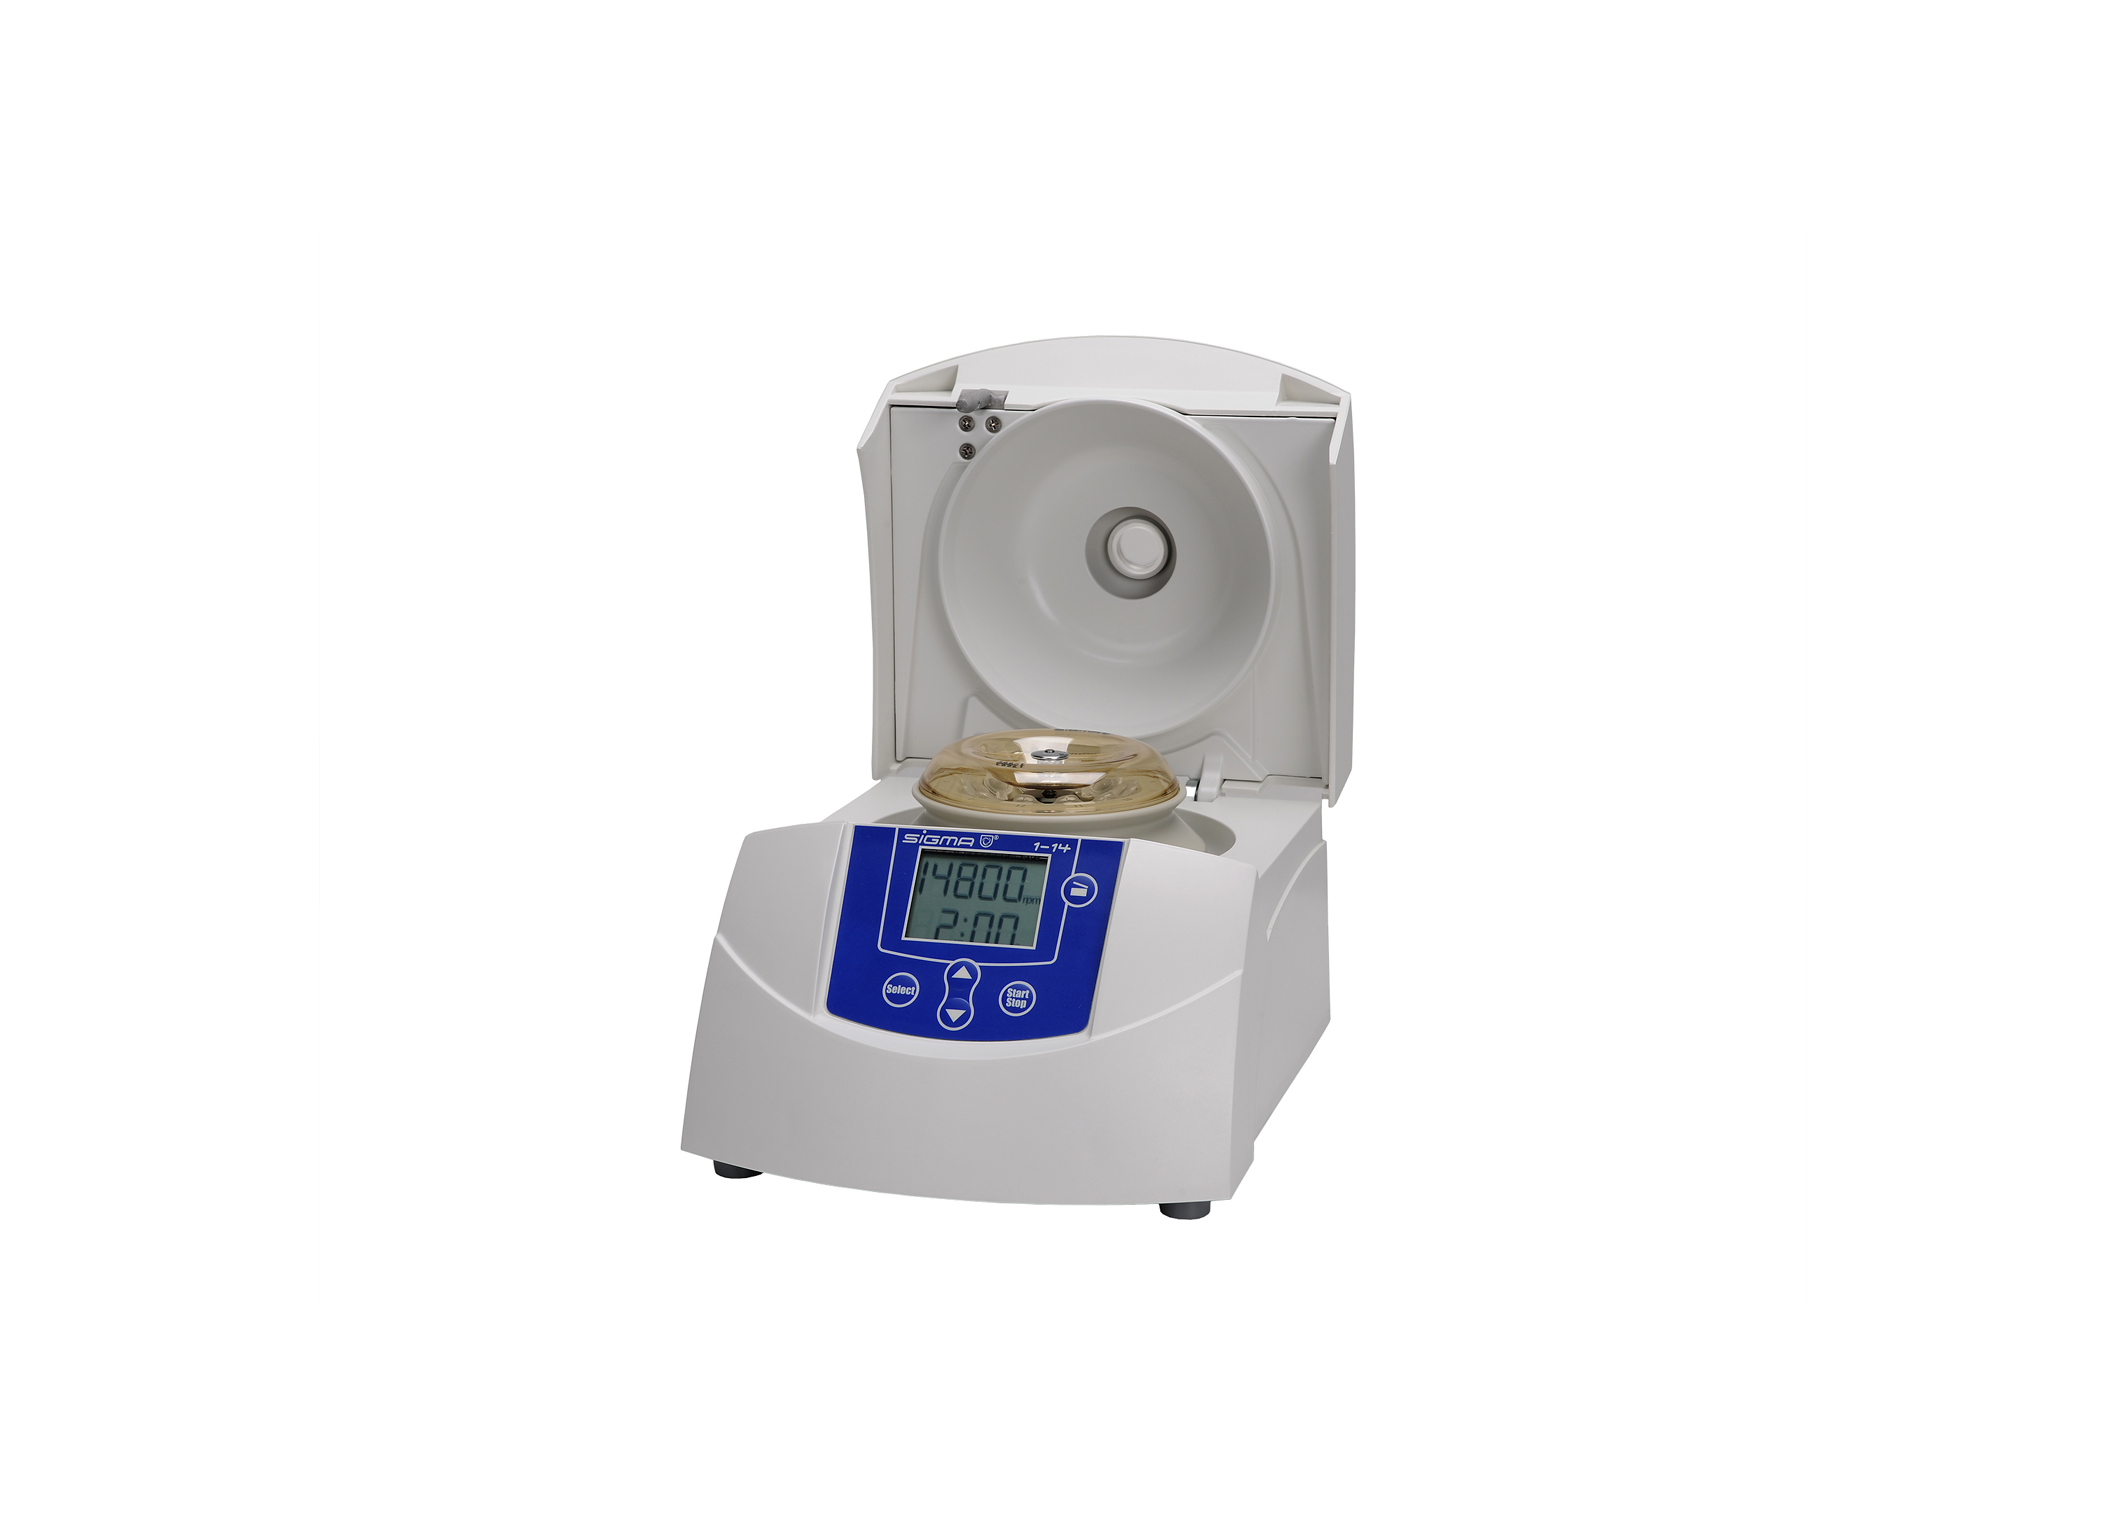 Microcentrifuge 1-14, laboratory table top, 220-240V 50/60Hz